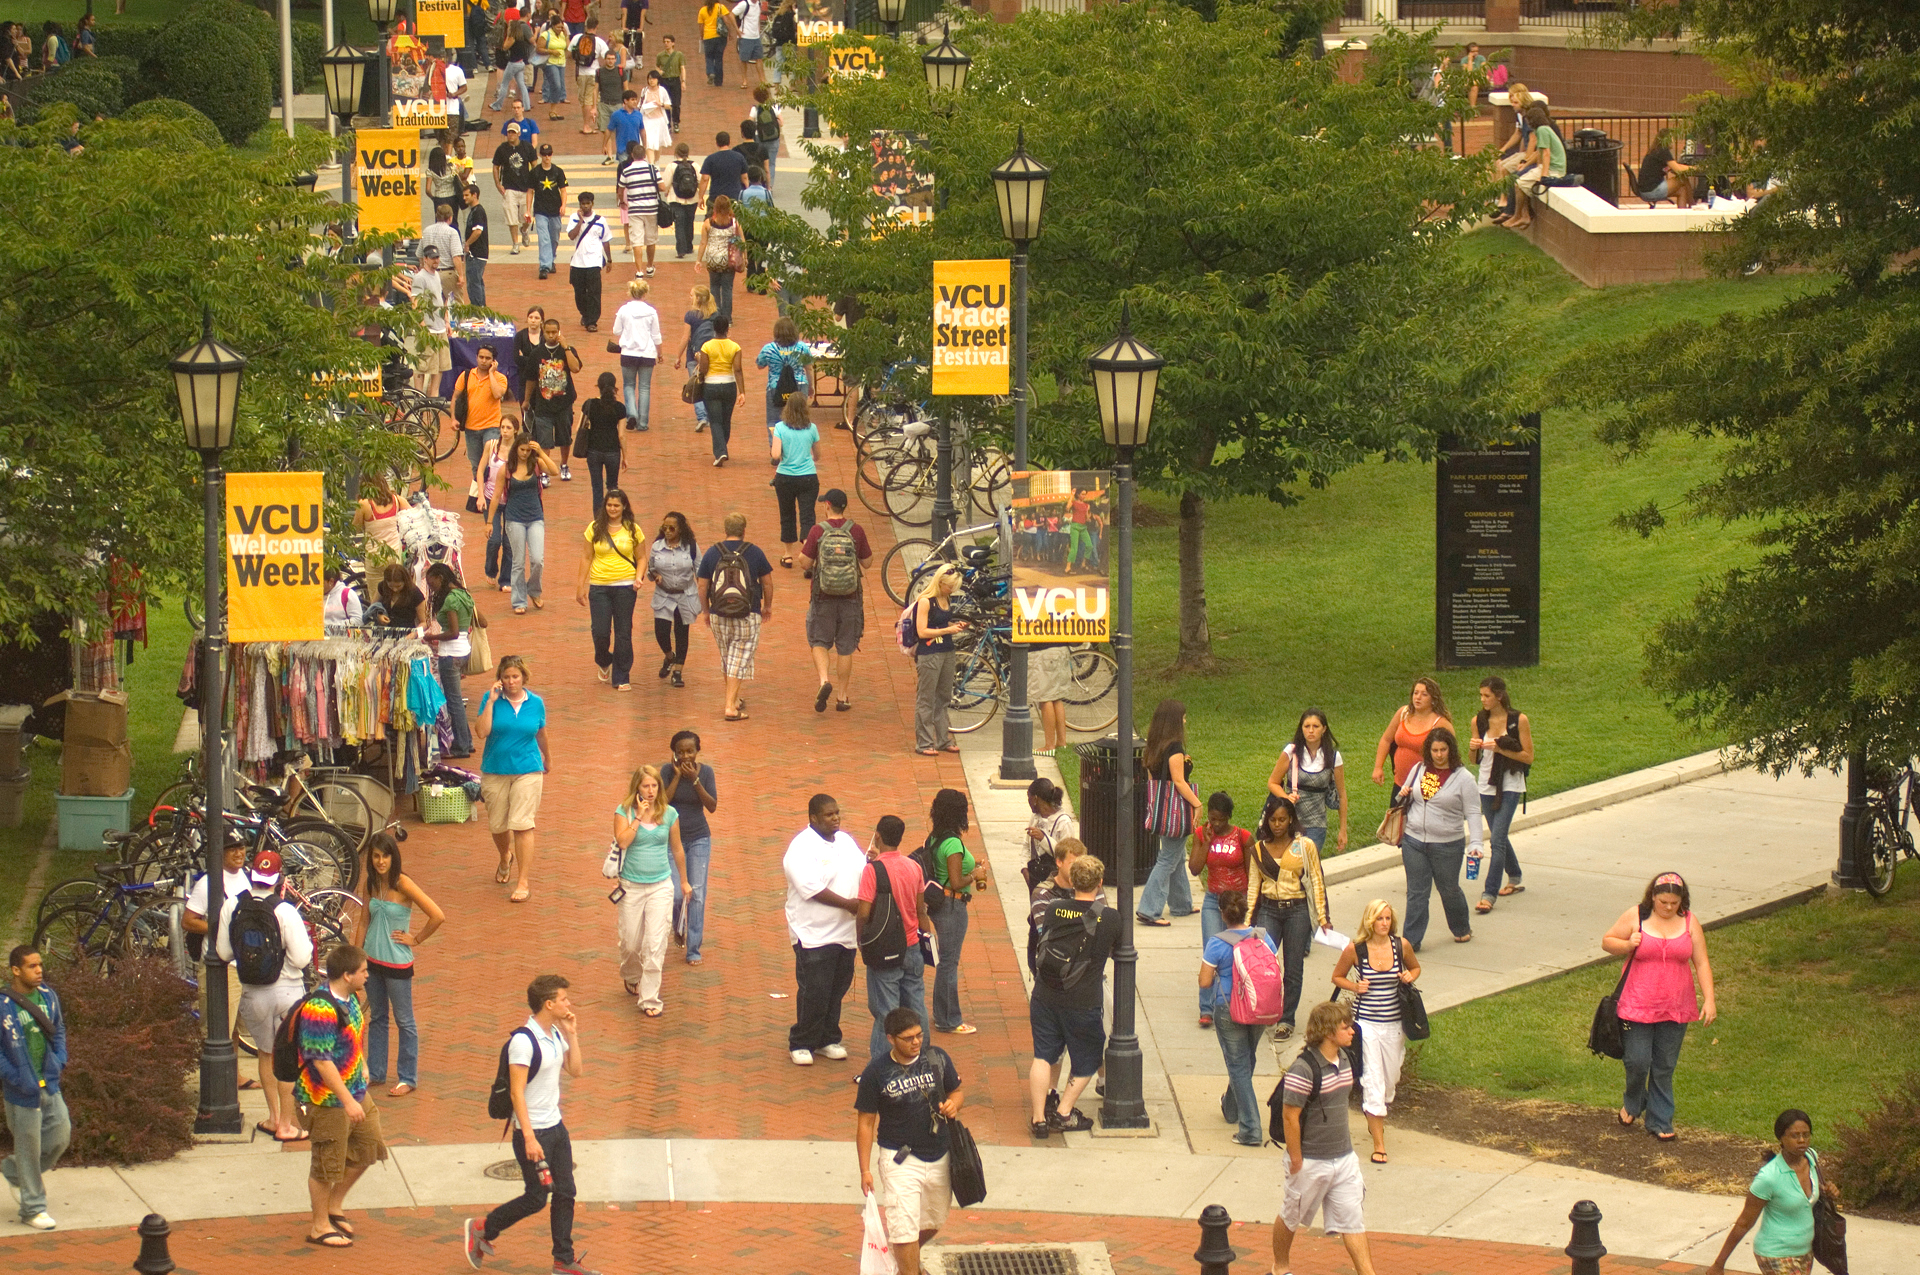 5 worst places to study at virginia commonwealth university